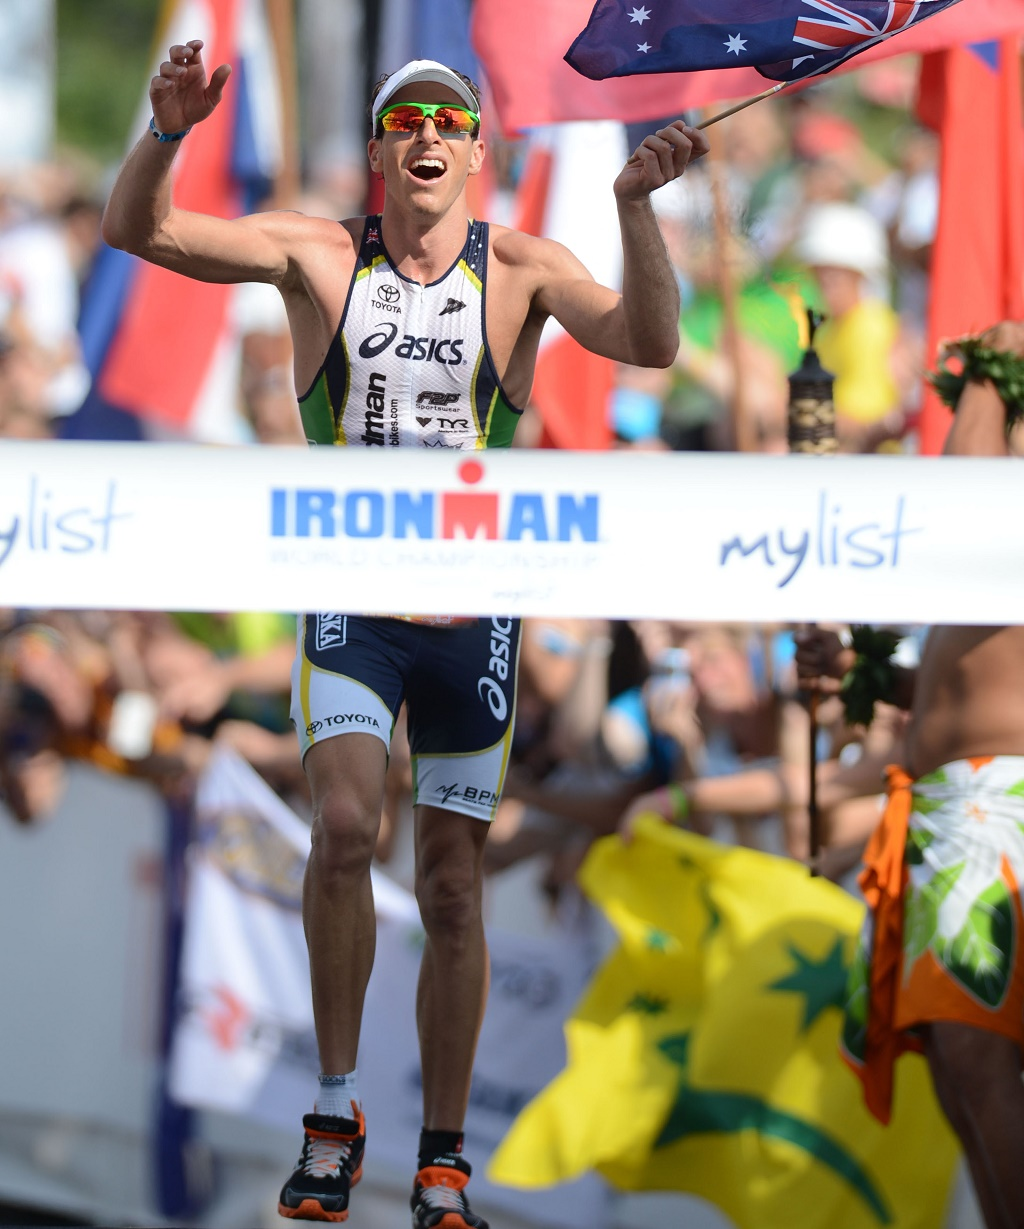 Peter Jacobs AUST wins the Hawaiian Ironman Triathlon, Hawaiian Ironman Triathlon 2012, Kailua-Kona Hawaii, October 13 2012. Pic Credit : Delly / Sportshoot. Pic credit mandatory for free usage.